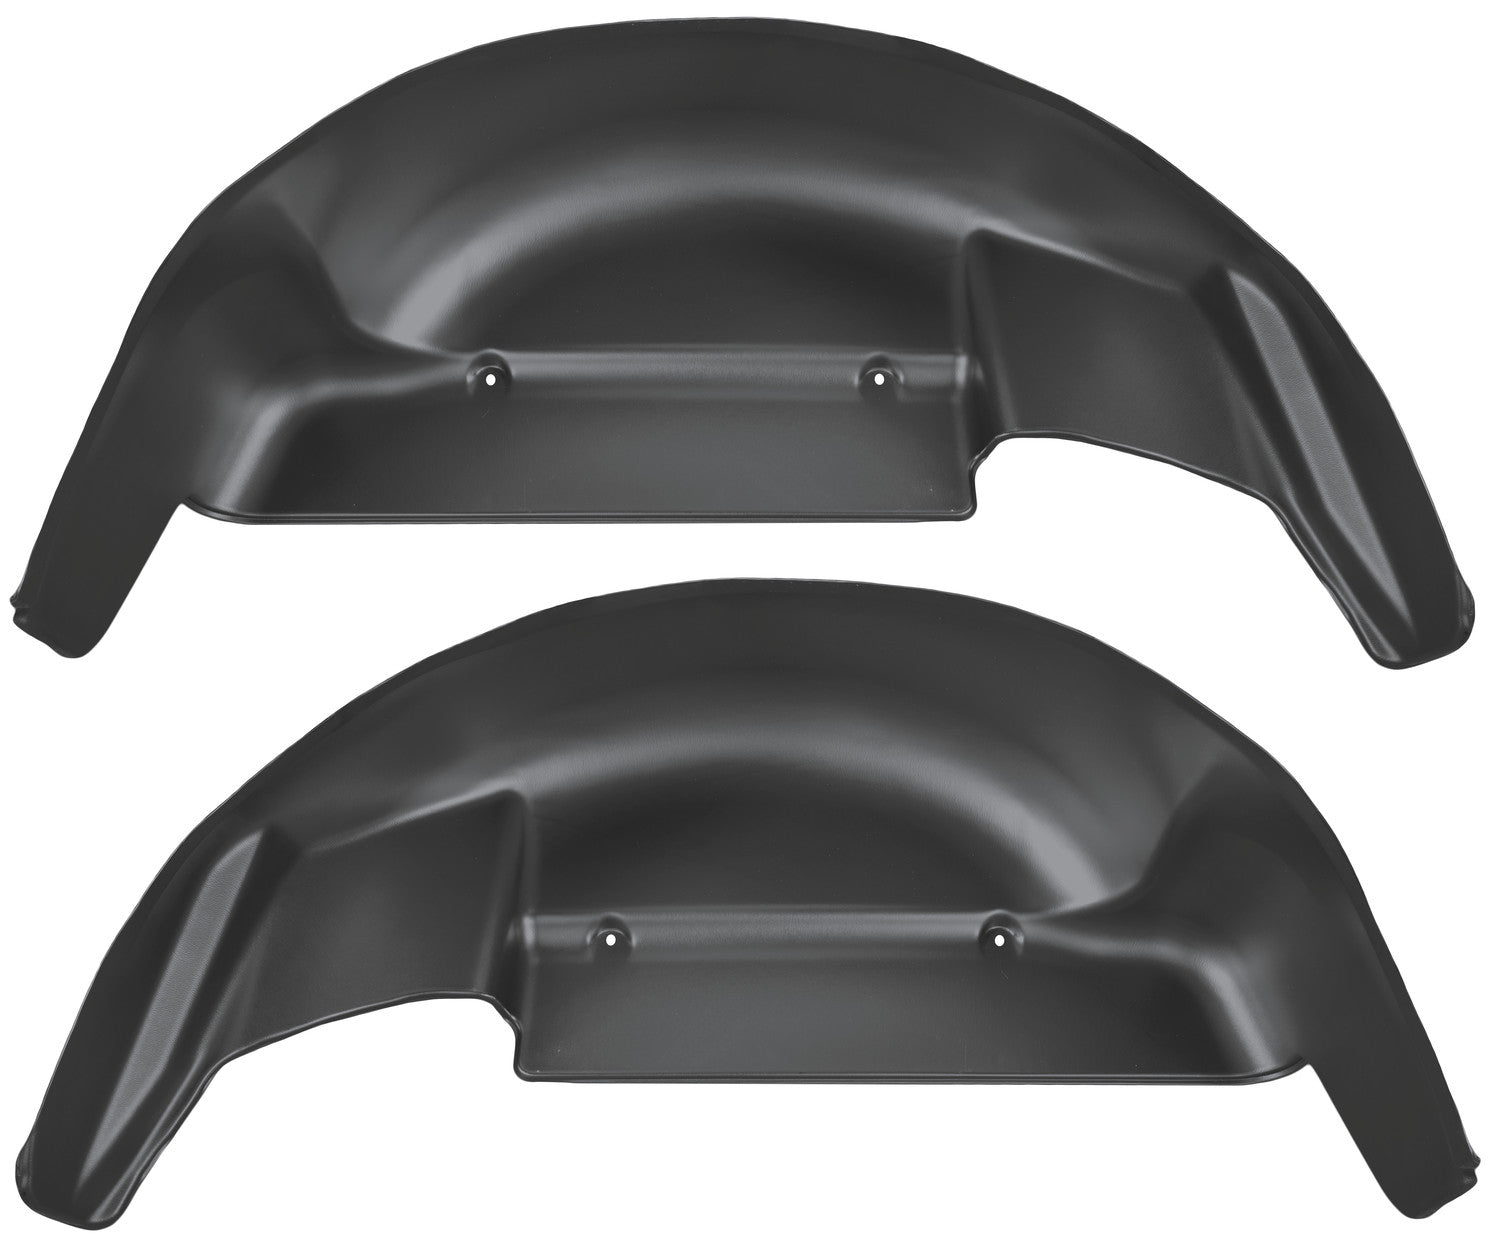 2007-2008 Ford F-150 FX2 Rear Wheel Well Guards